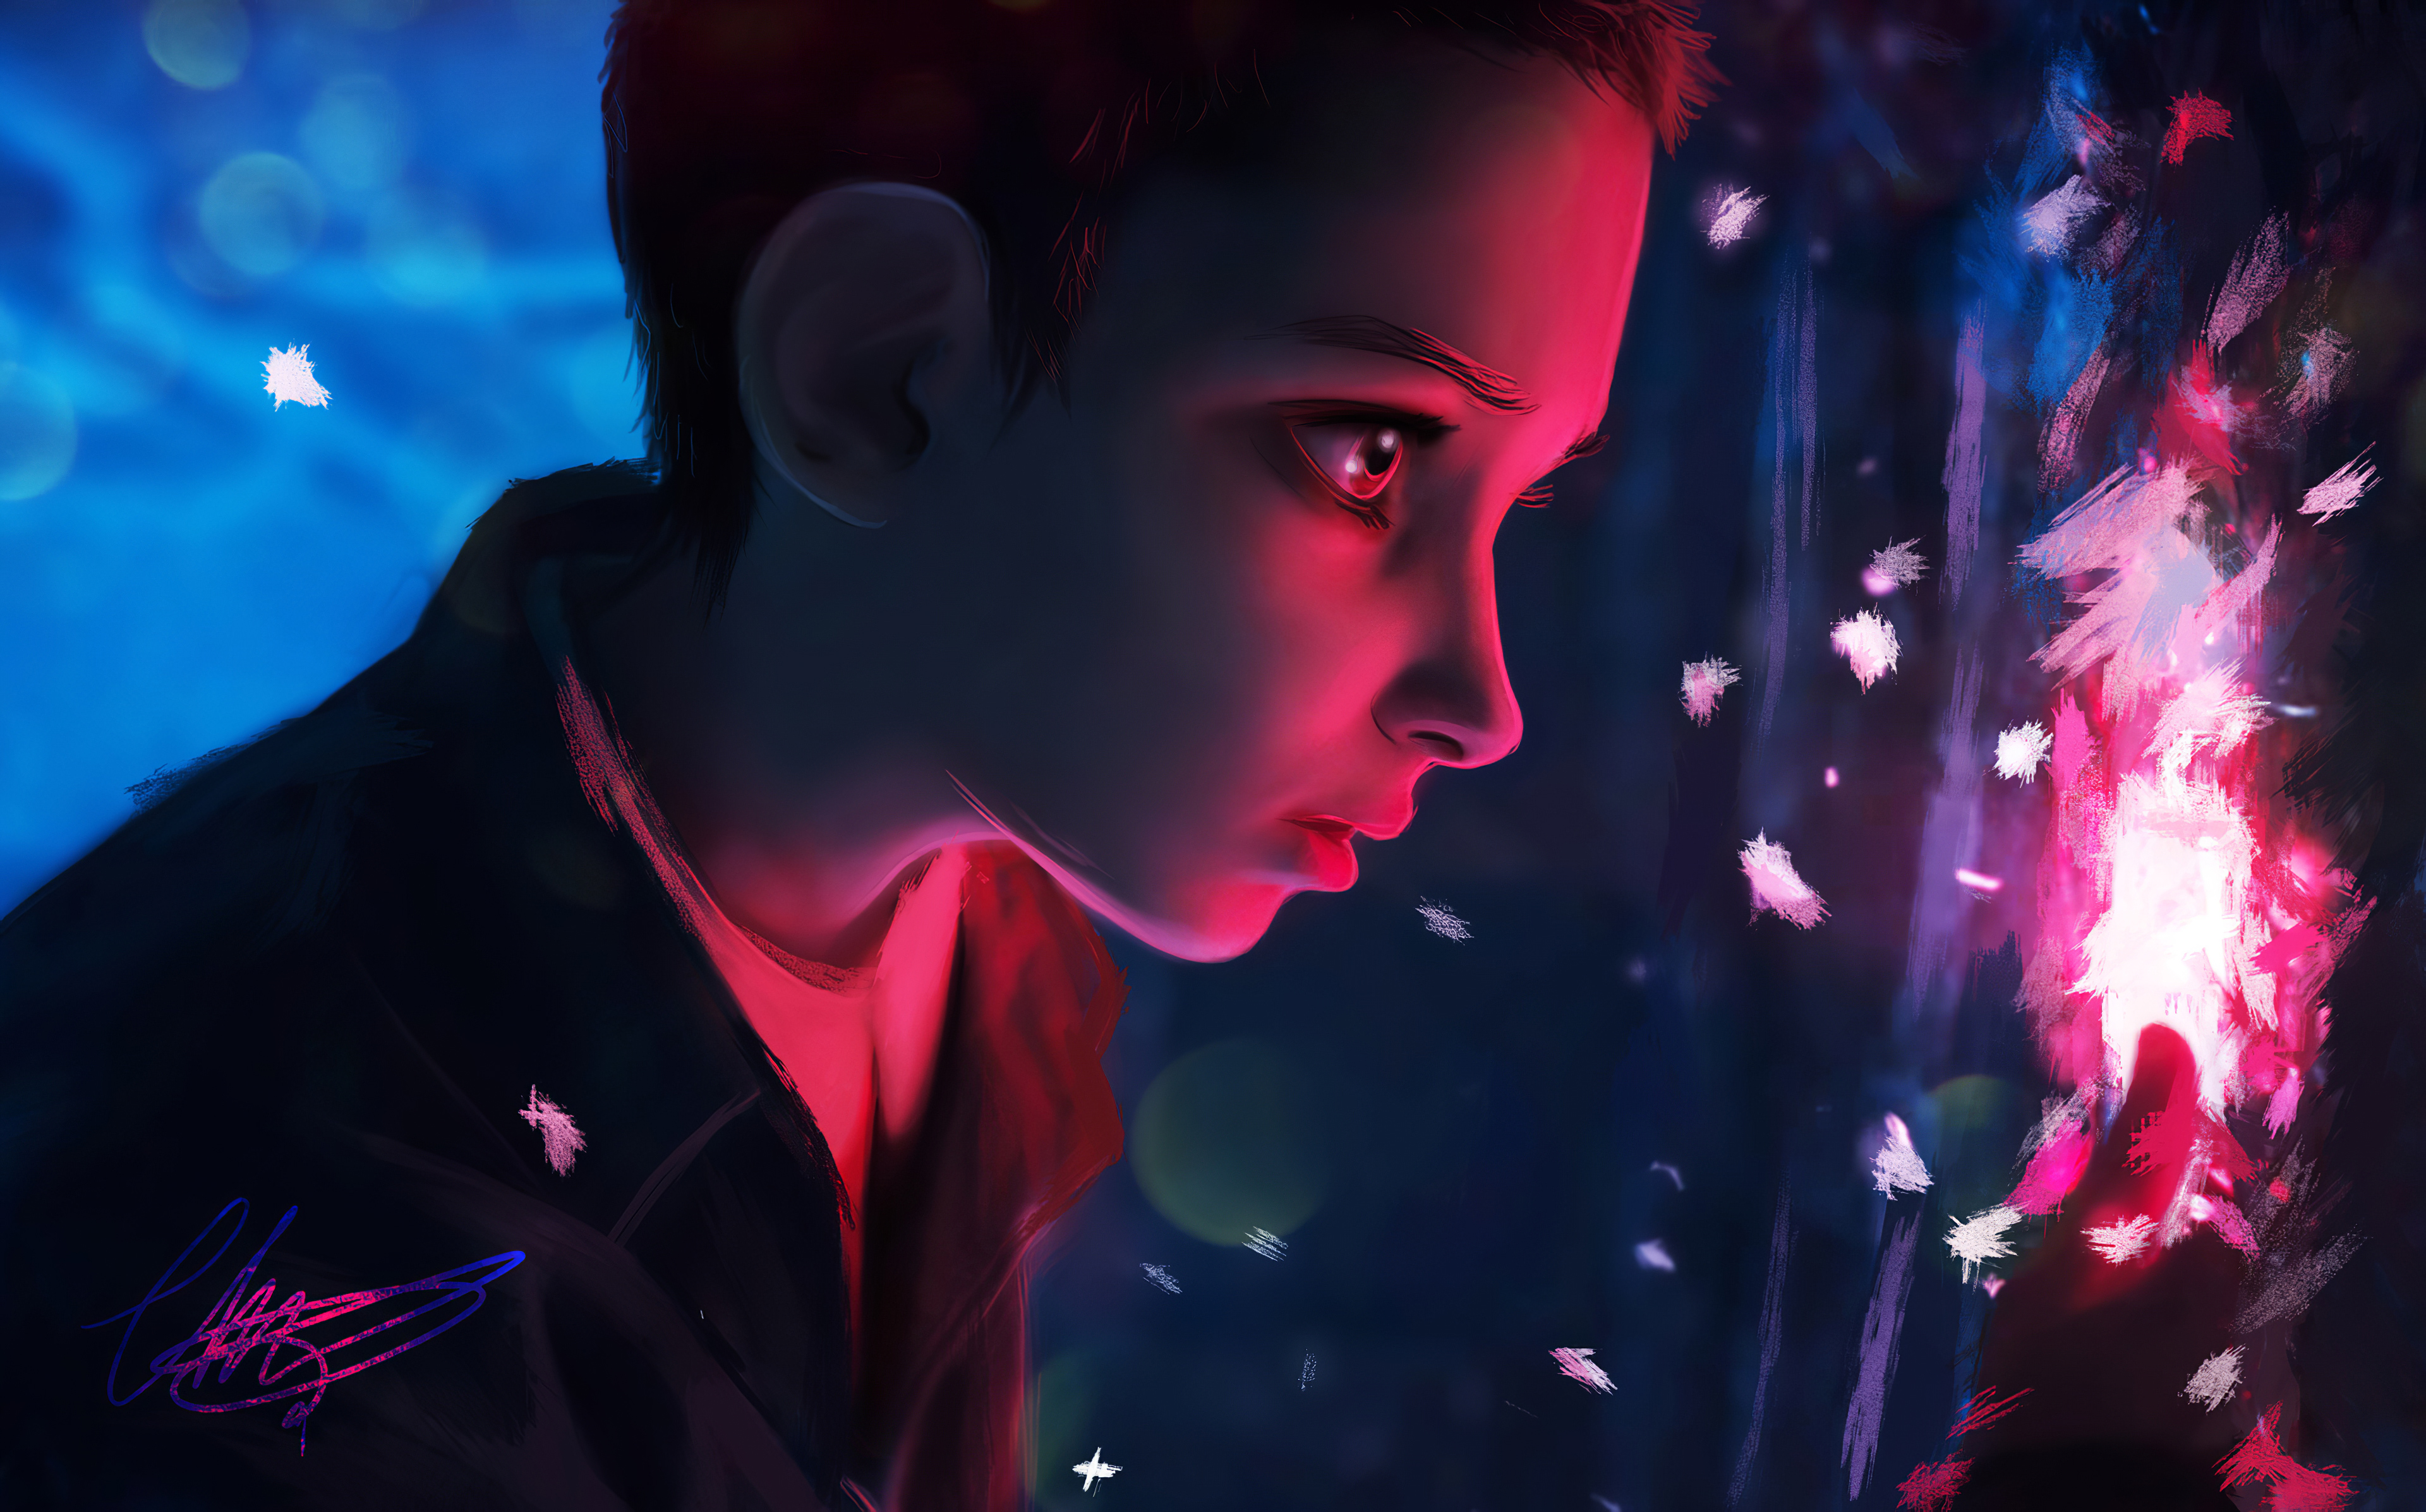 stranger things eleven art 1580056508 - Stranger Things Eleven Art - Stranger Things Eleven Art wallpapers, Stranger Things 4k wallpapers